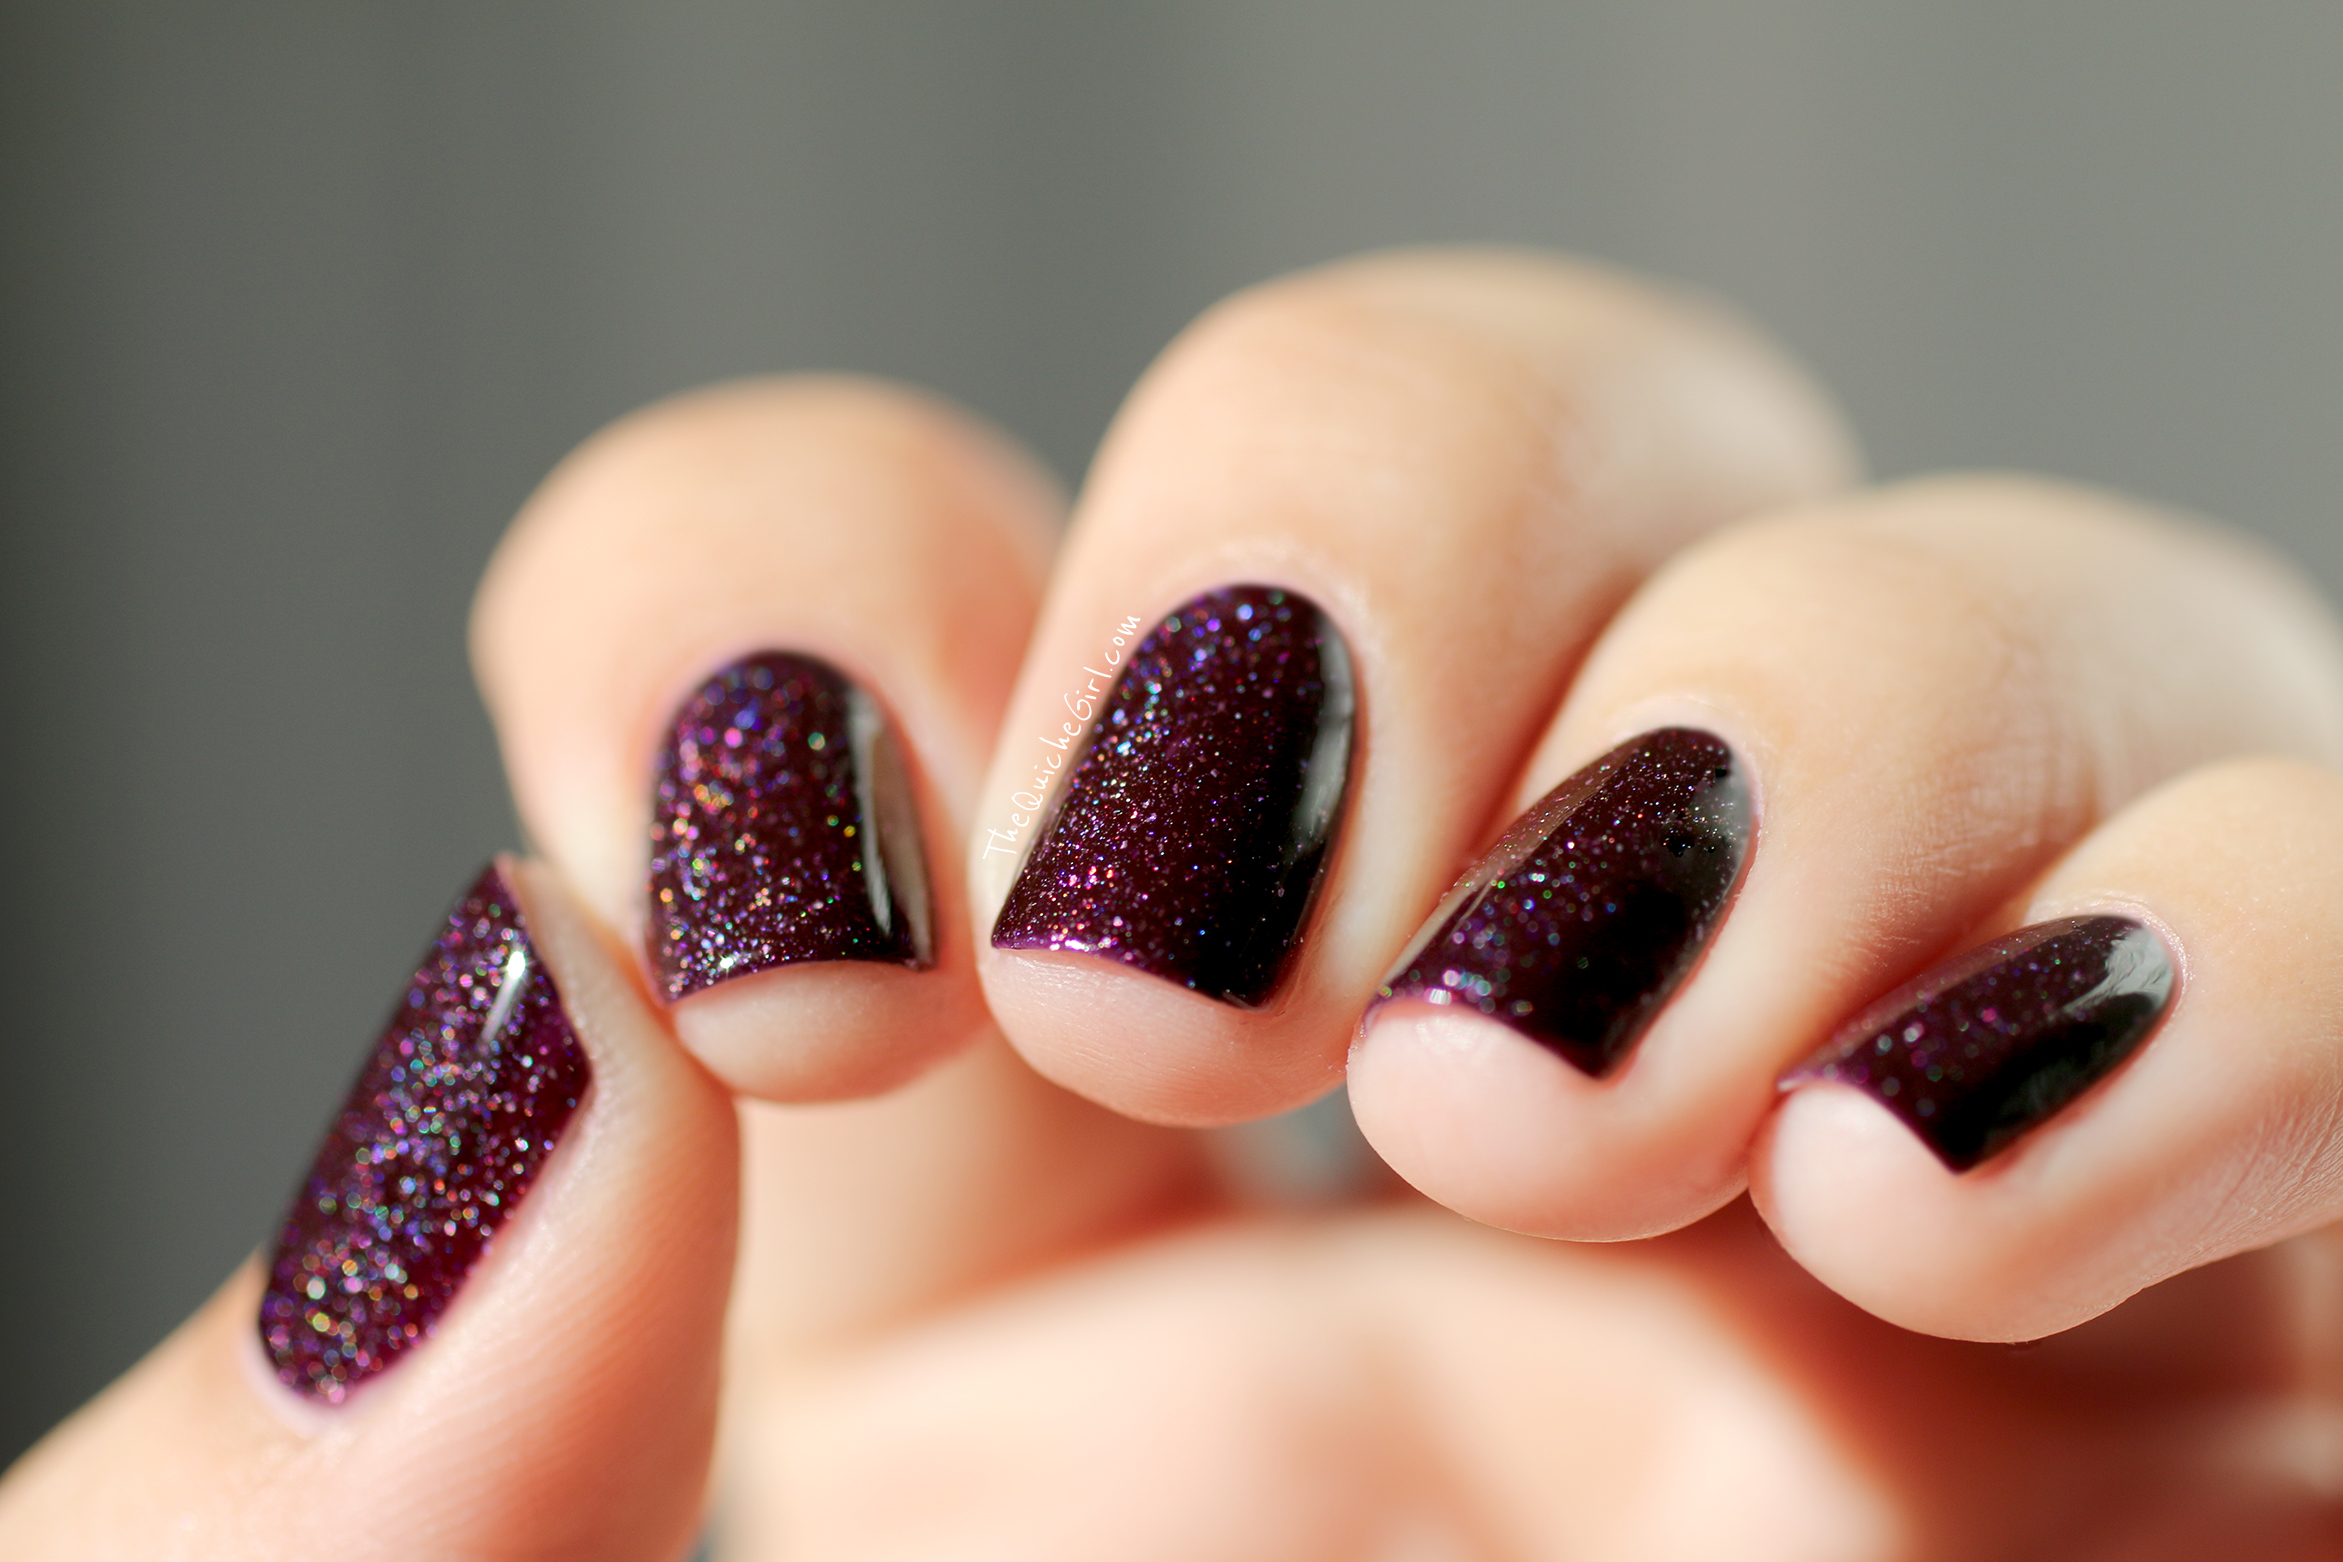 Karma, piscture polish, macro, prune, quichegirl